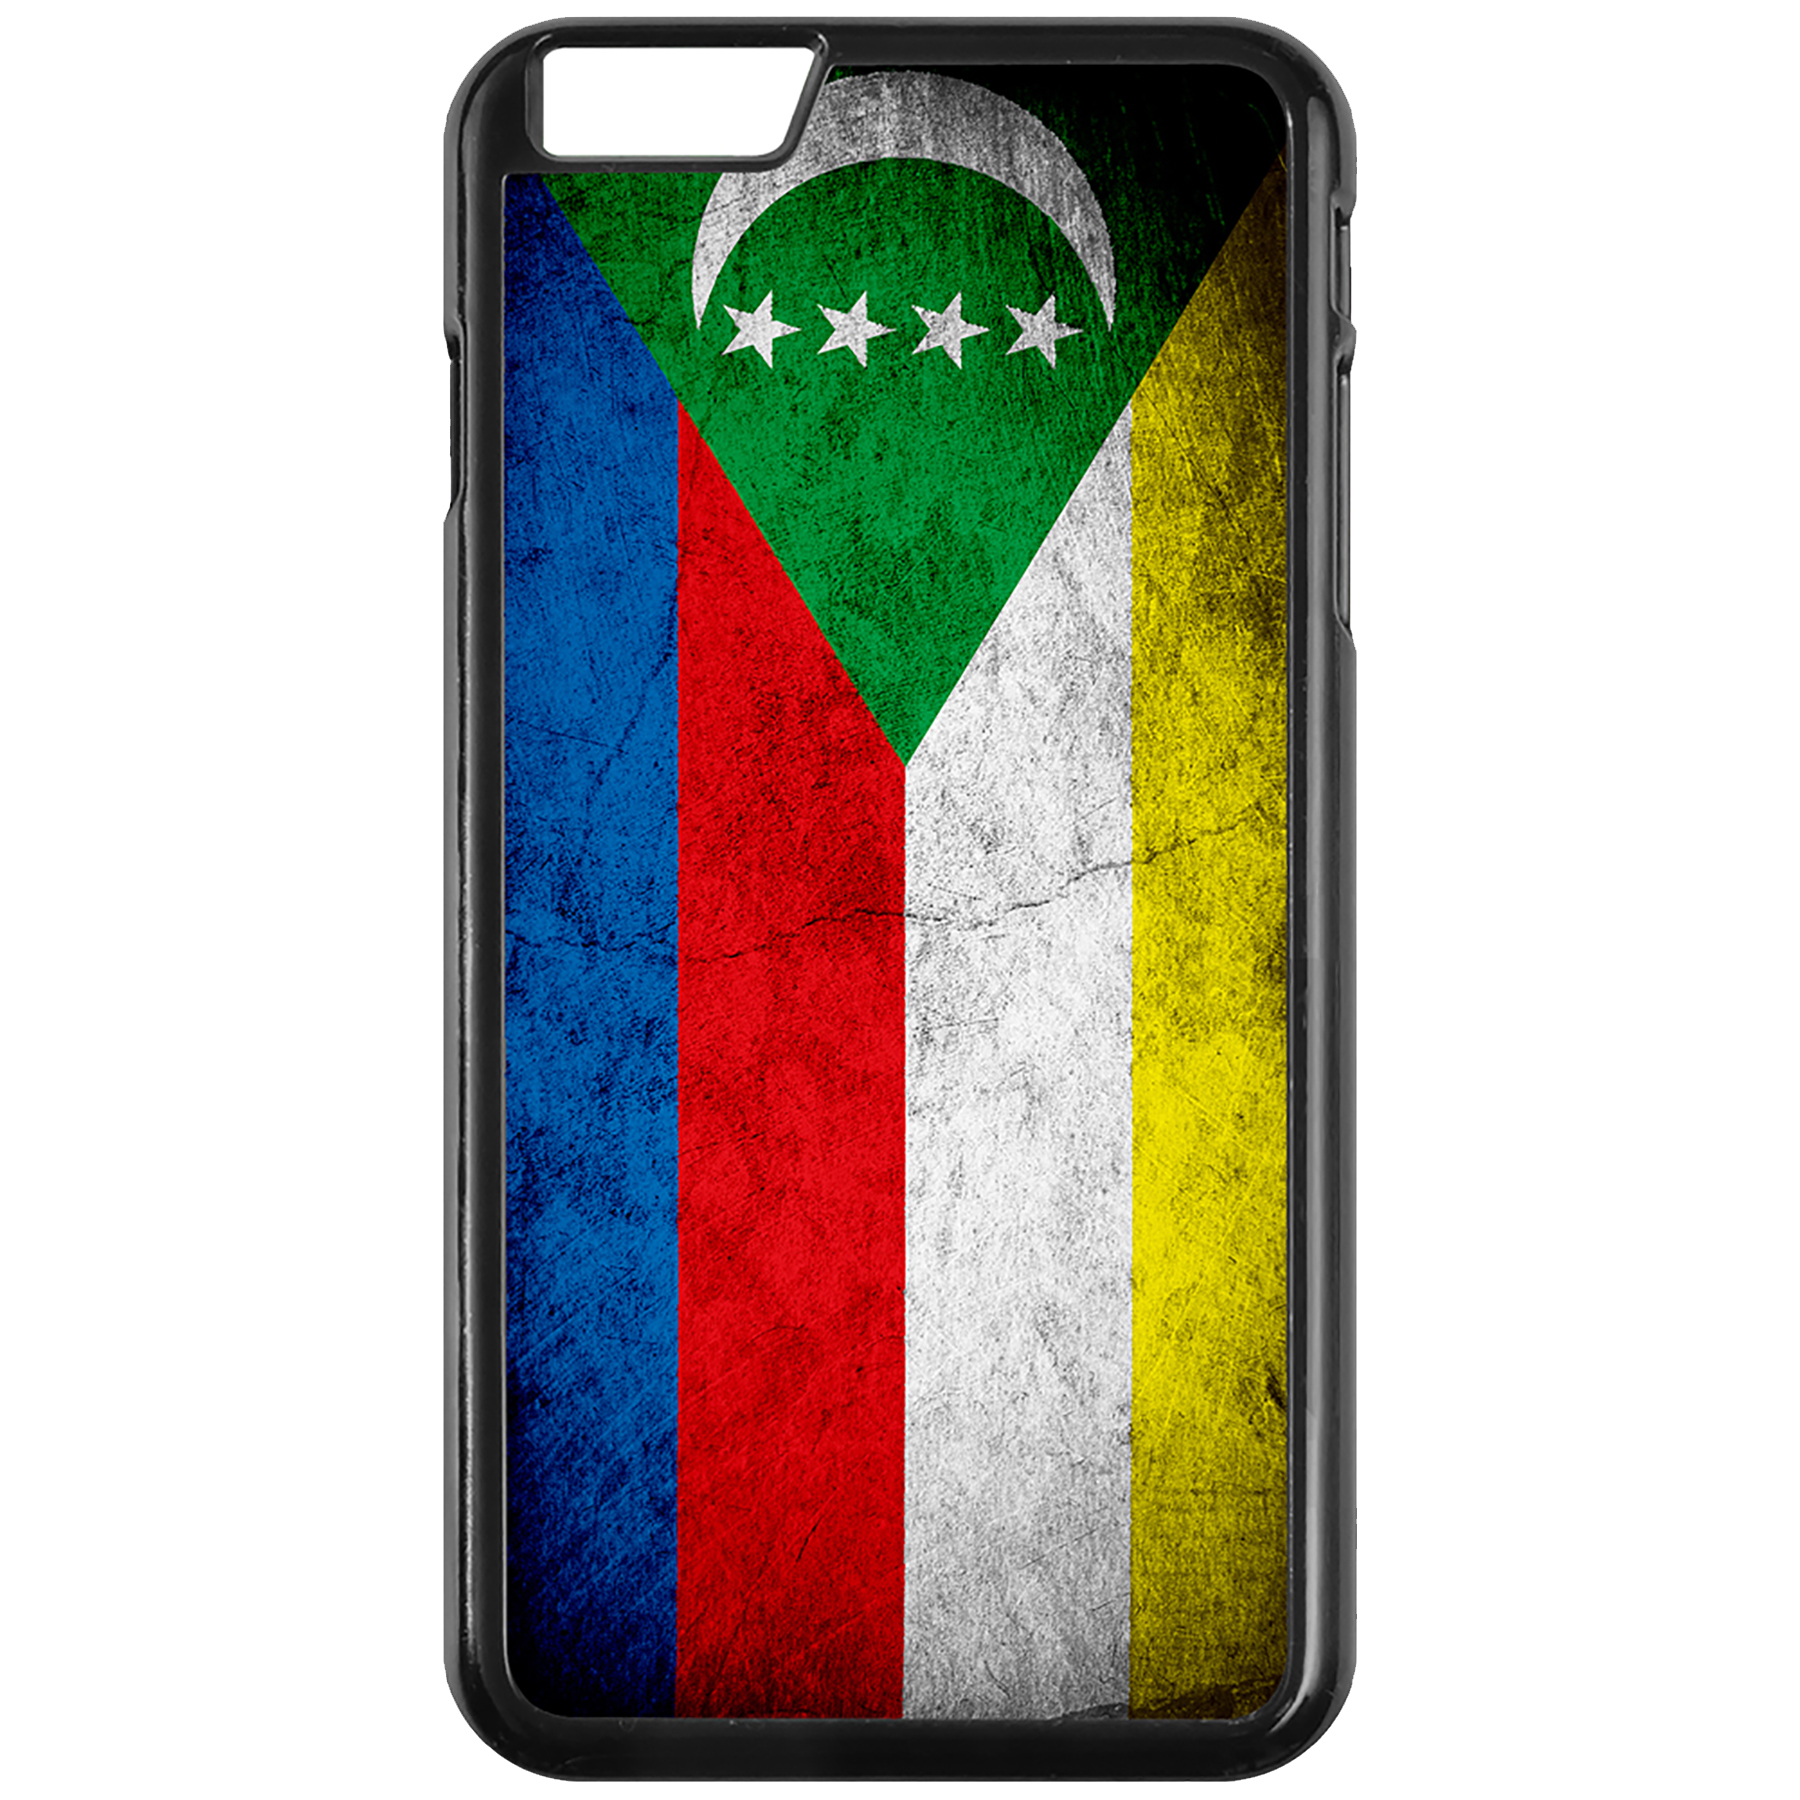 Apple-iPhone-Case-with-Flag-of-Comoros-Comorian-Many-Design-Options thumbnail 75